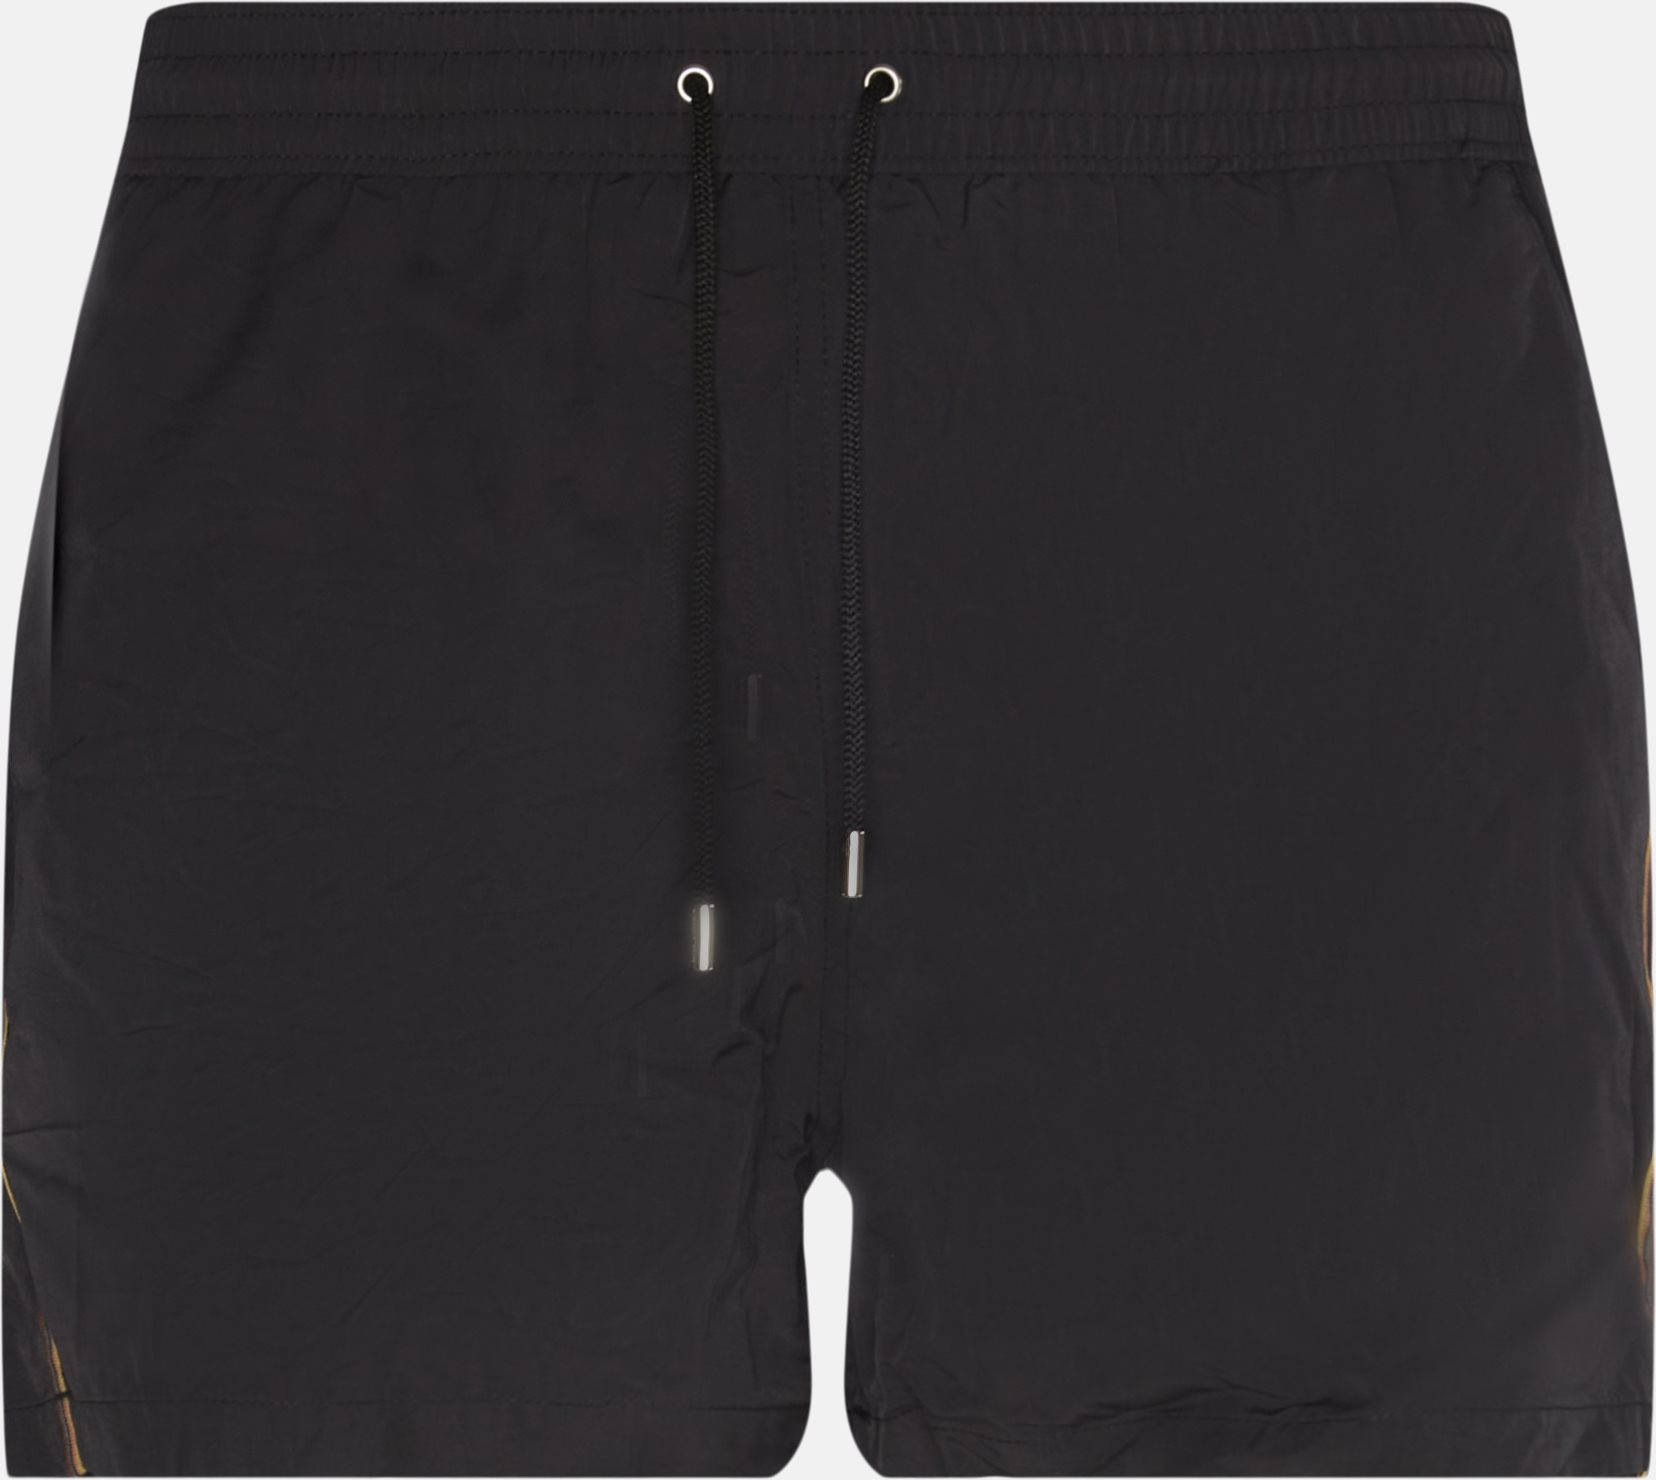 Shorts - Regular - Black